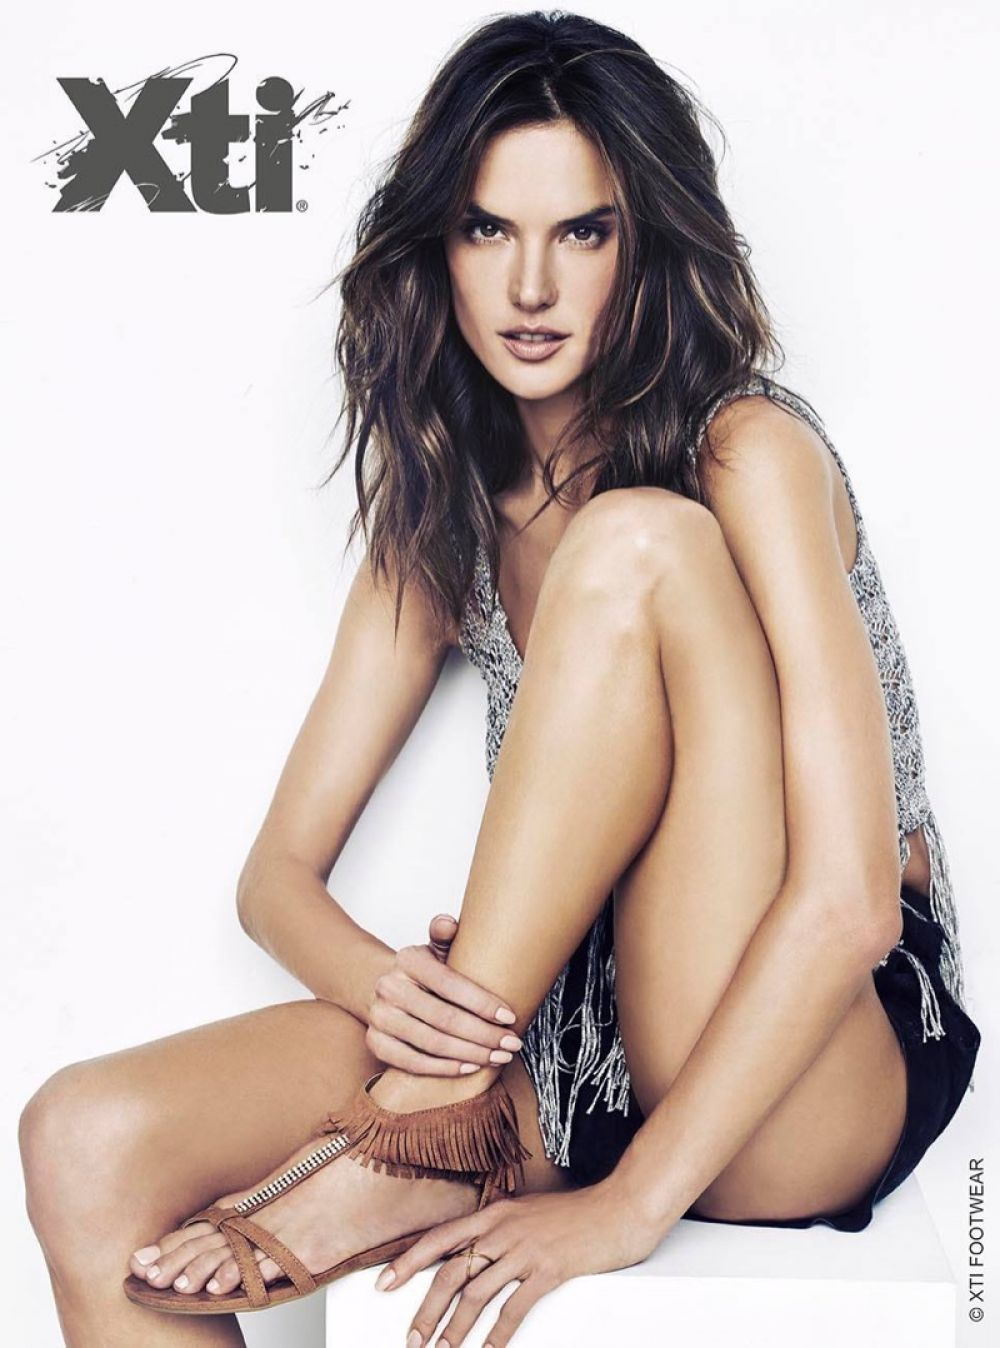 Alessandra ambrosio for xti shoes spring summer 2016 campaign